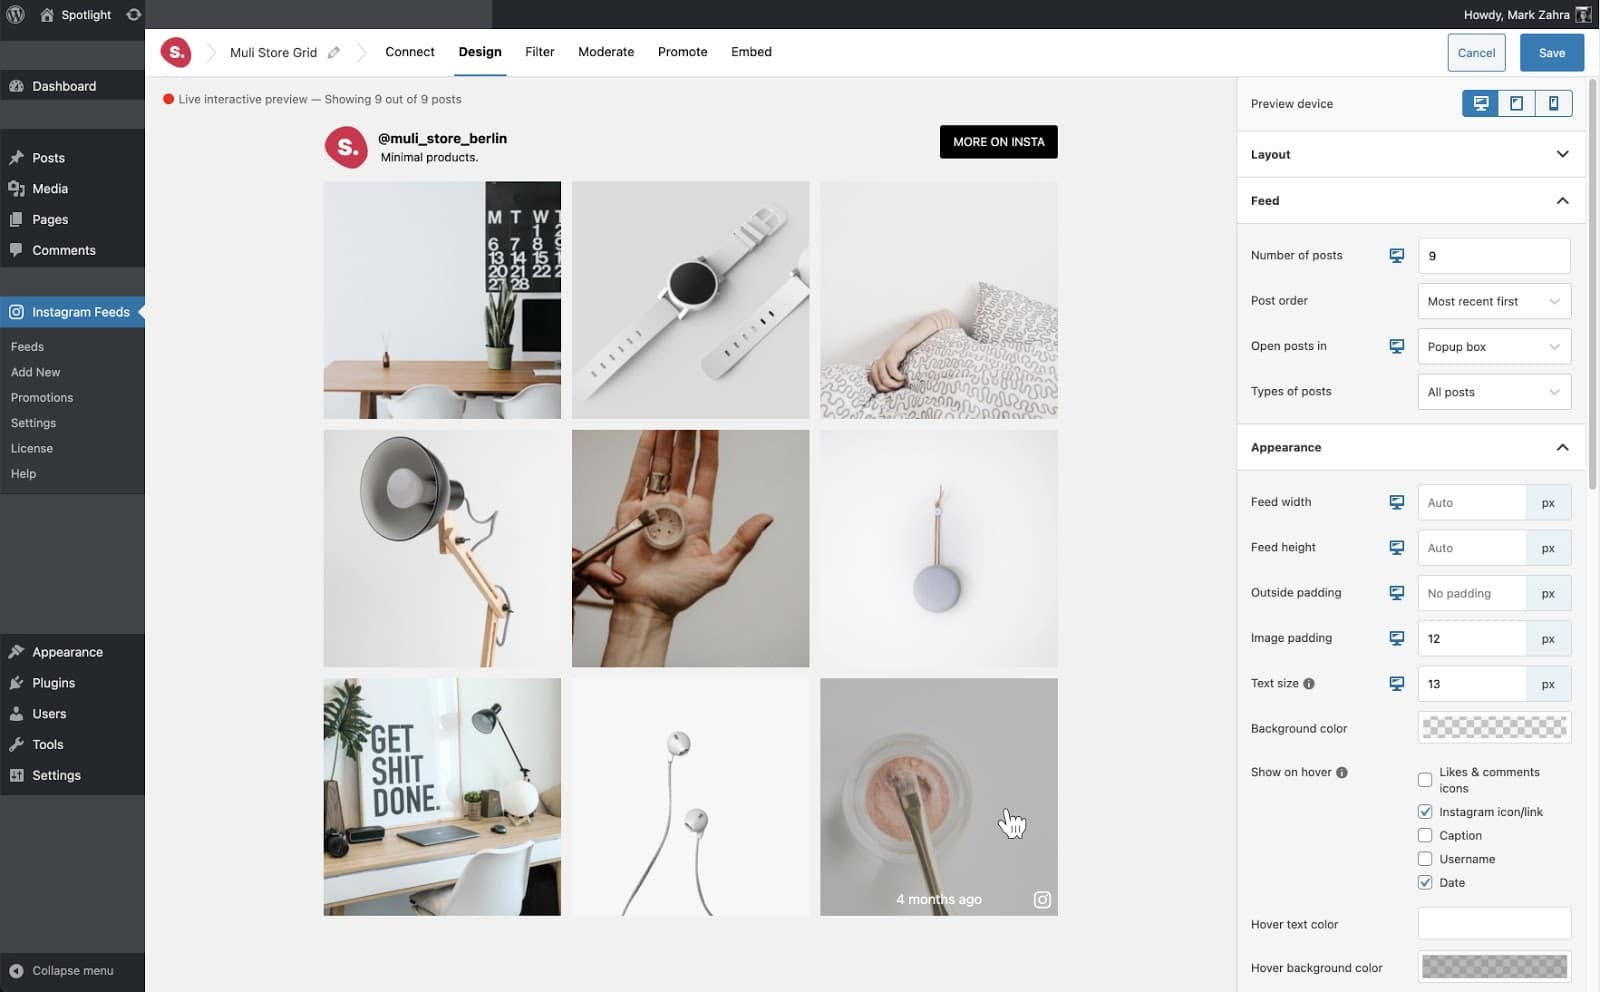 Spotlight Instagram Feeds - Design